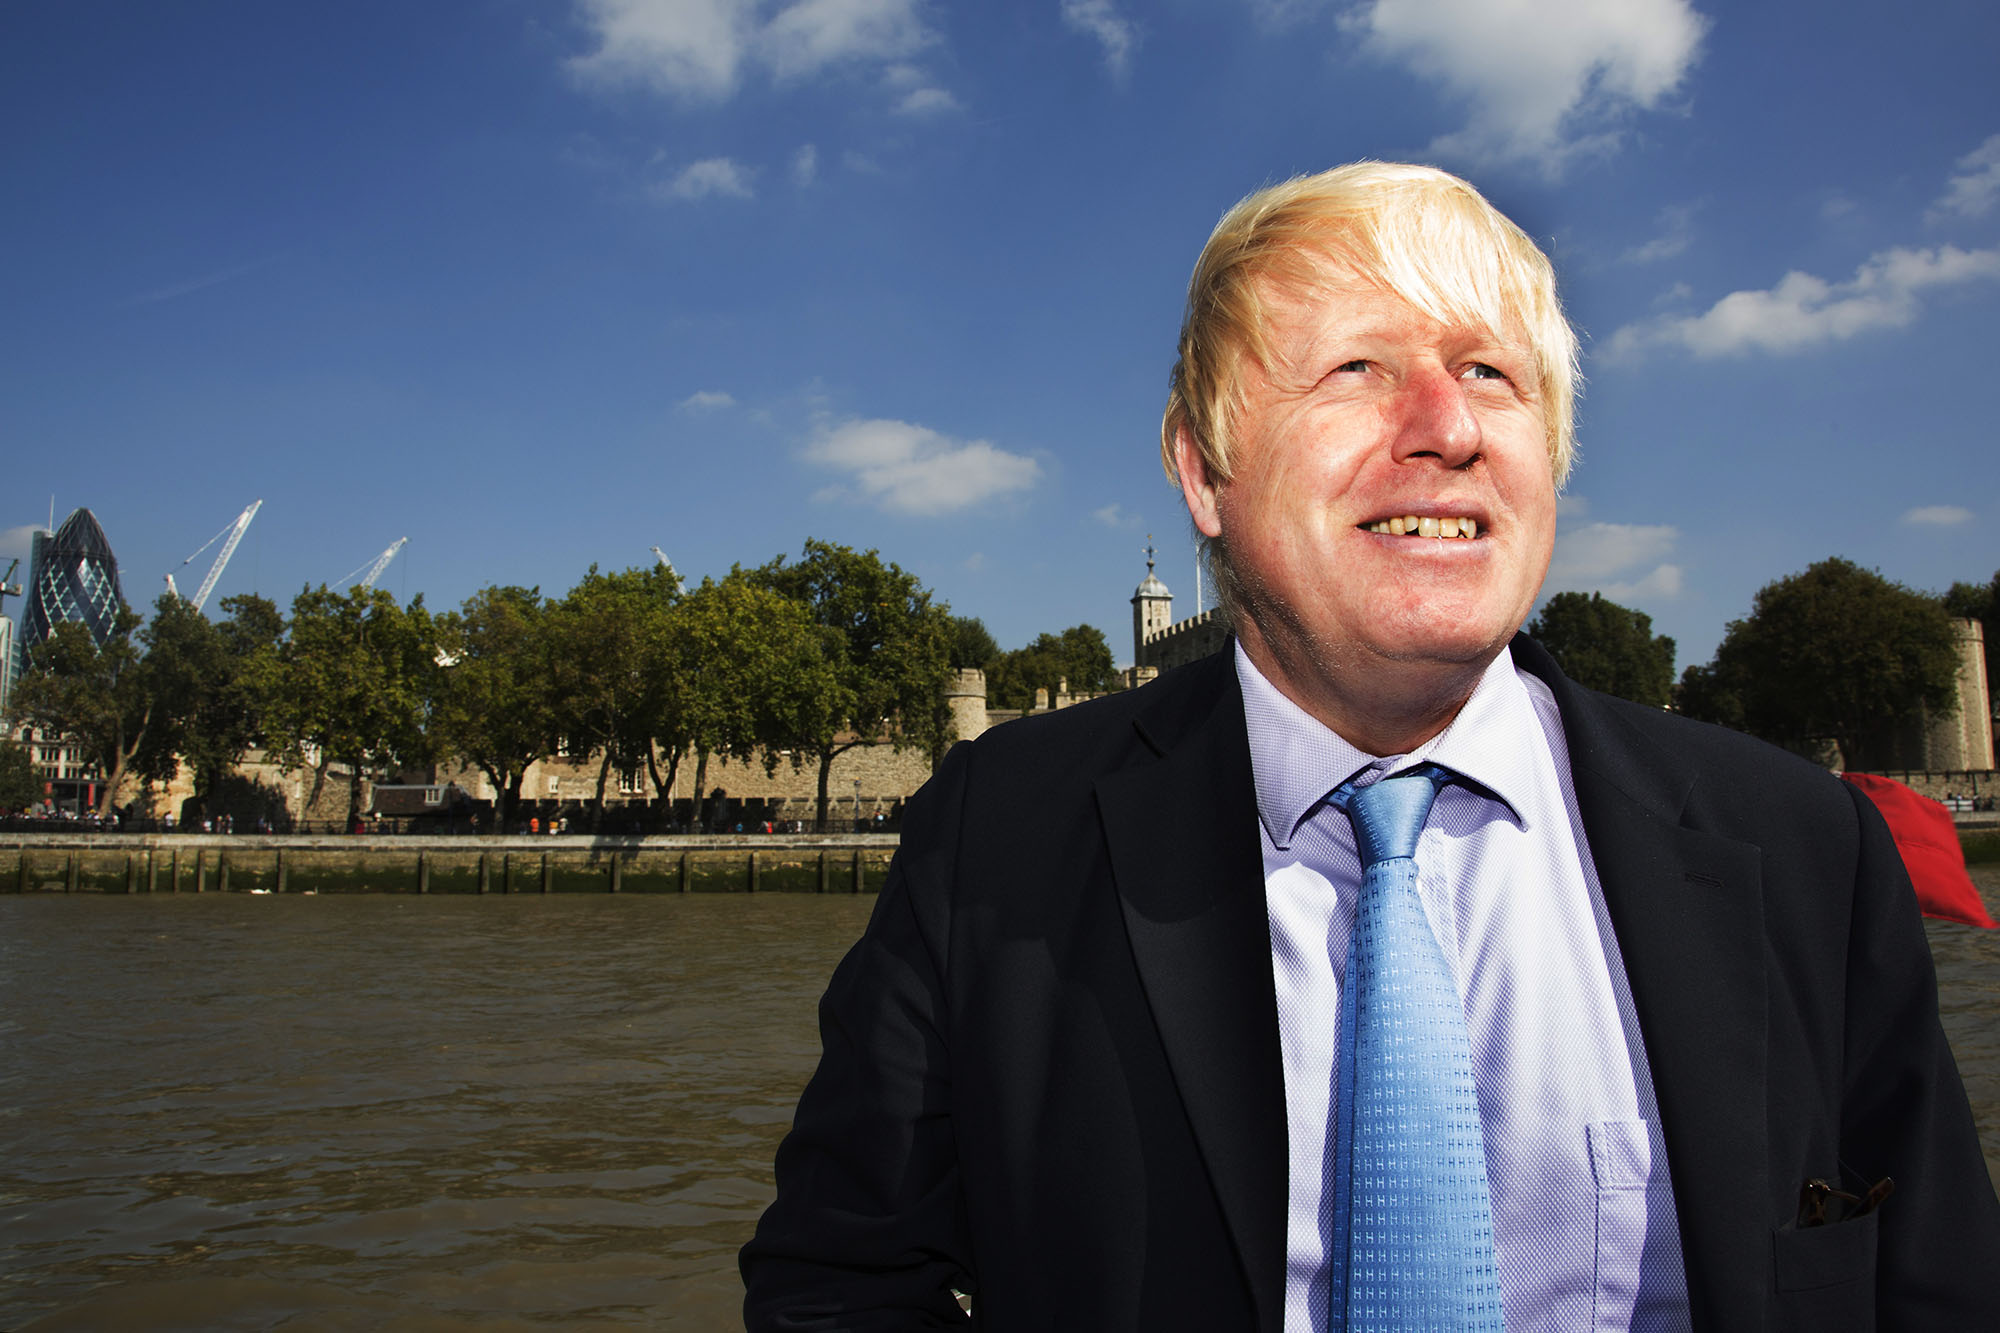 London Mayor Boris Johnson travelling down the River Thames.  For Totally Thames.